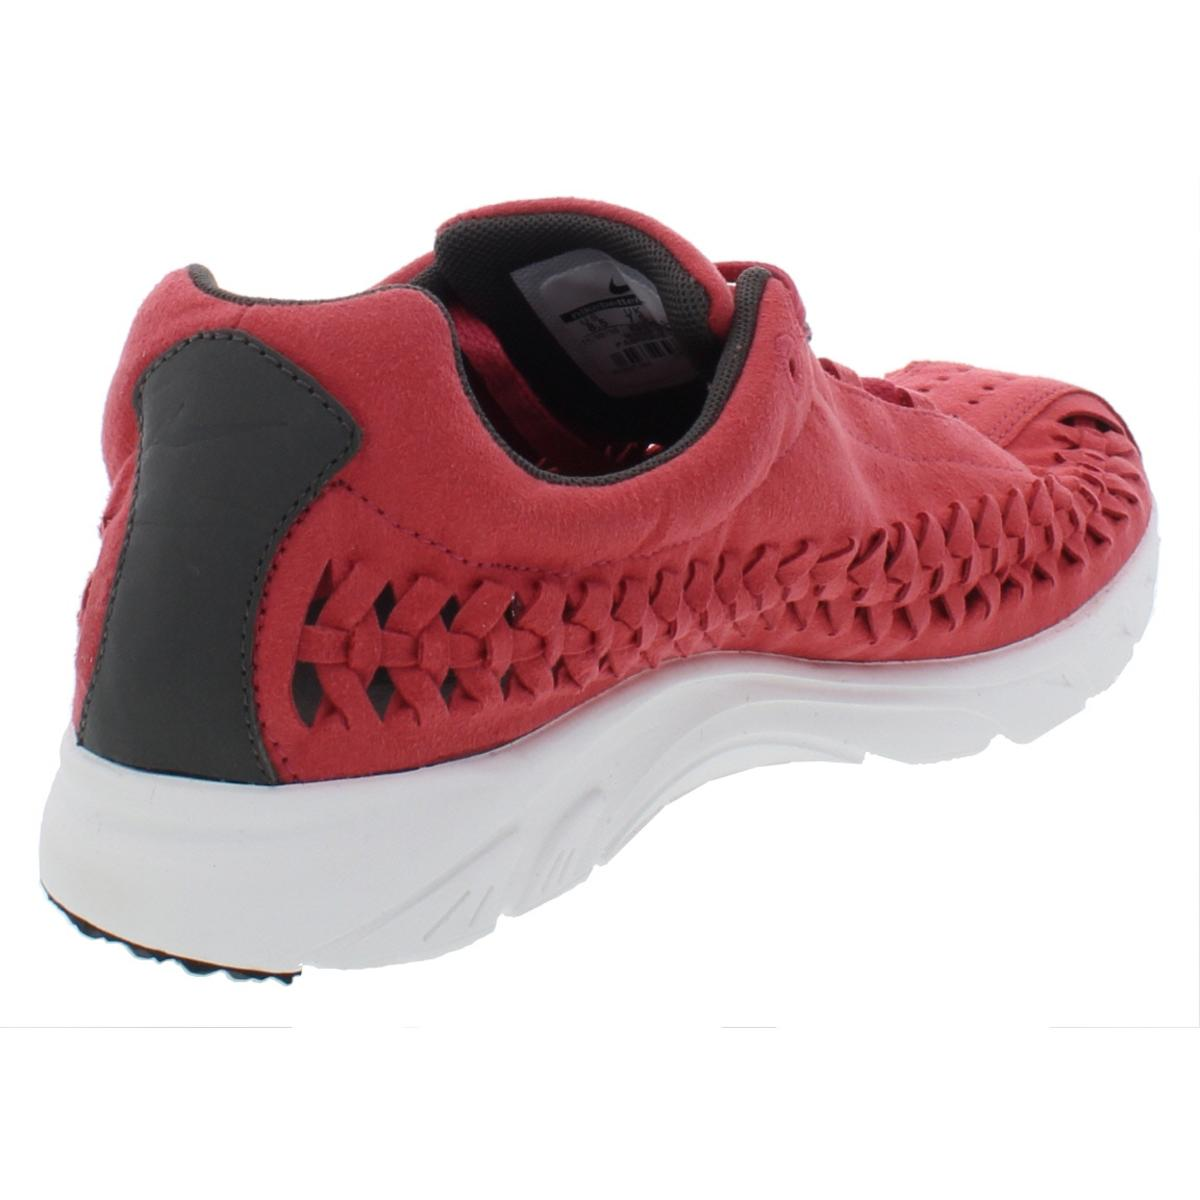 Nike-Mens-Mayfly-Woven-Suede-Woven-Training-Fashion-Sneakers-Shoes-BHFO-2898 thumbnail 18